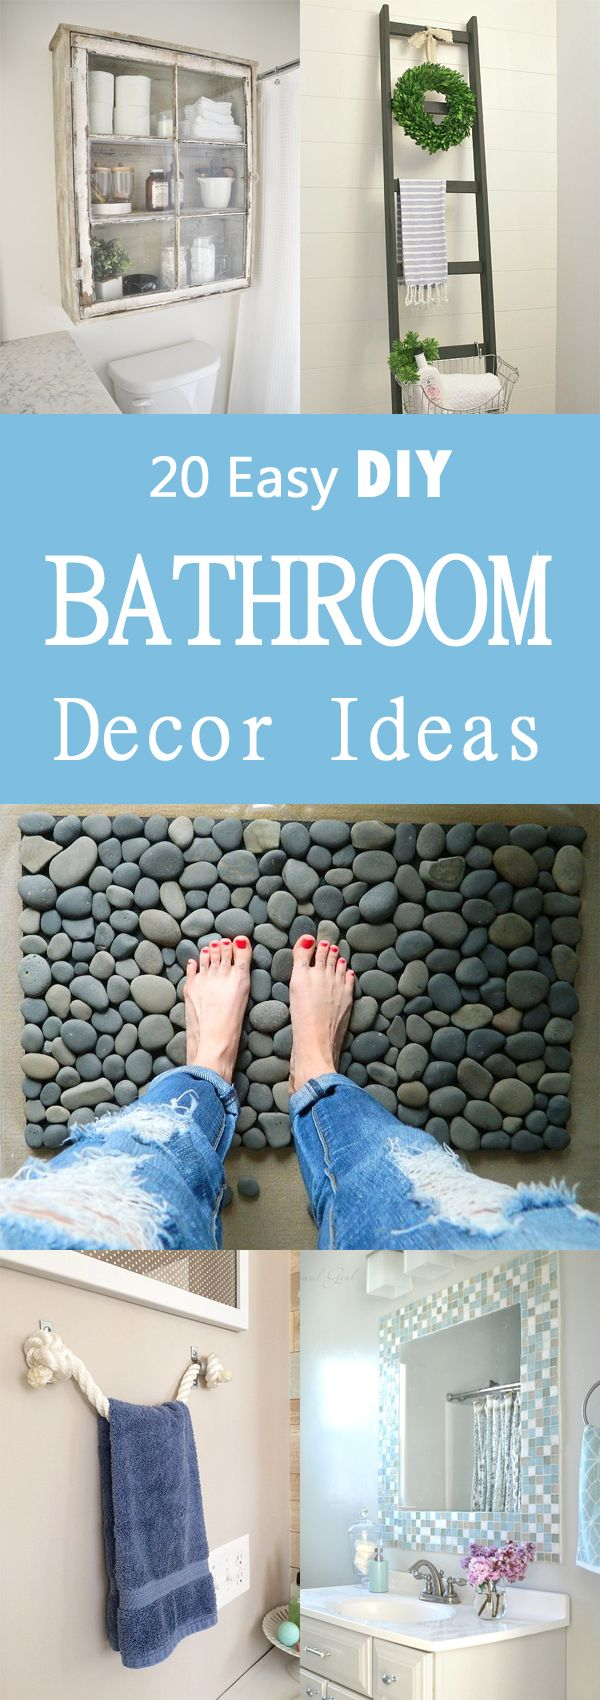 423 best bathroom images on pinterest home bathroom and 20 easy diy bathroom decor ideas